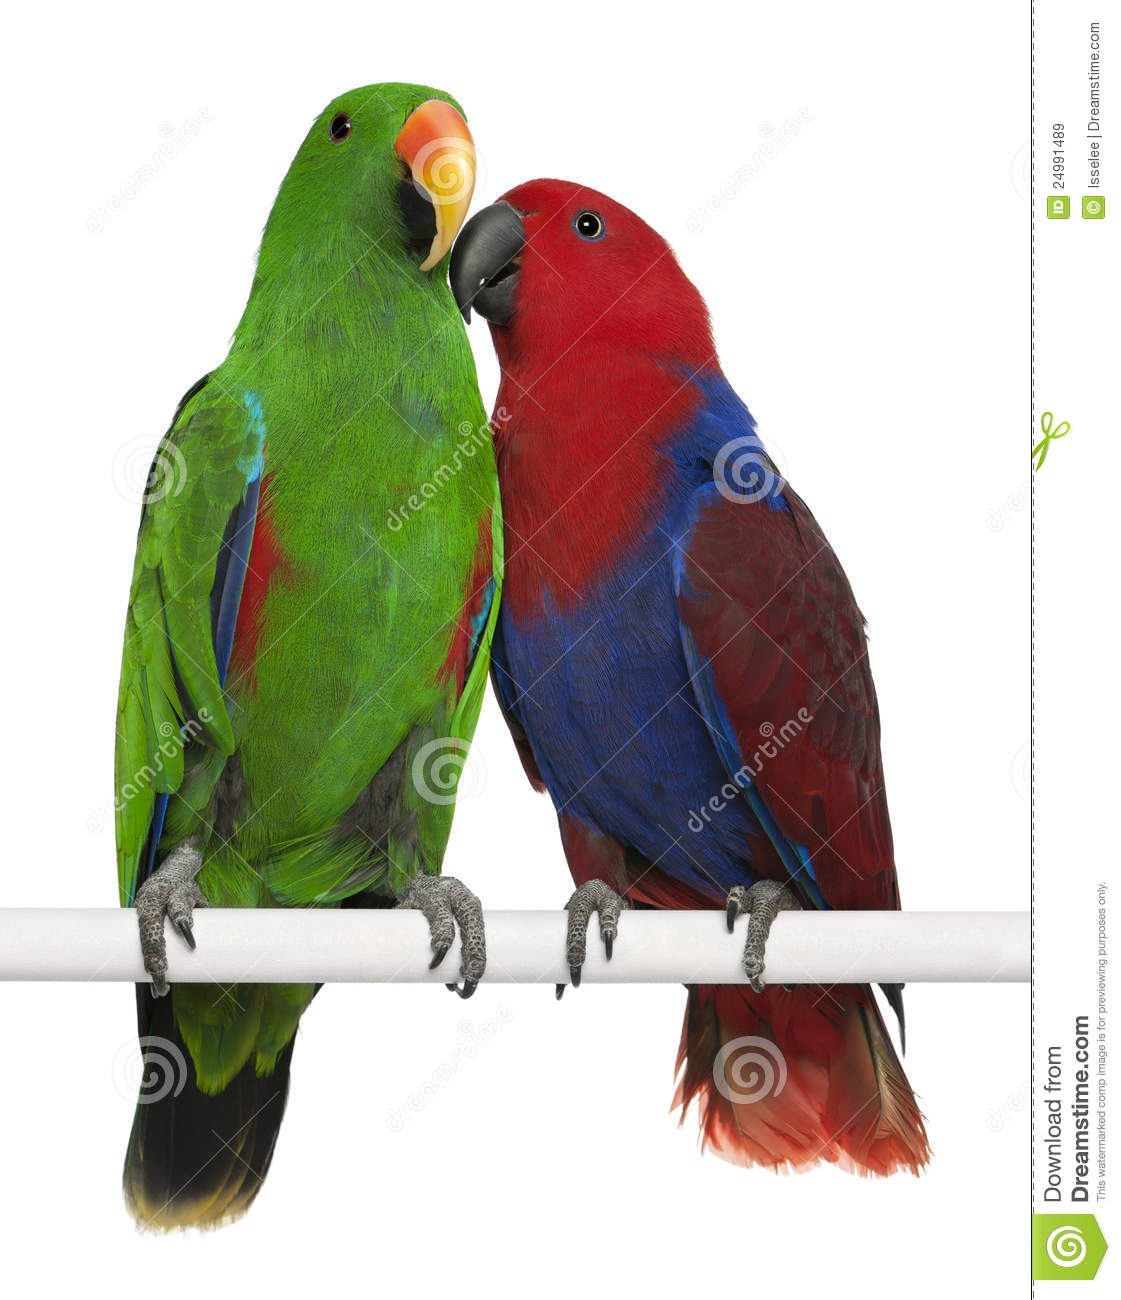 Male and Female Eclectus Parrots